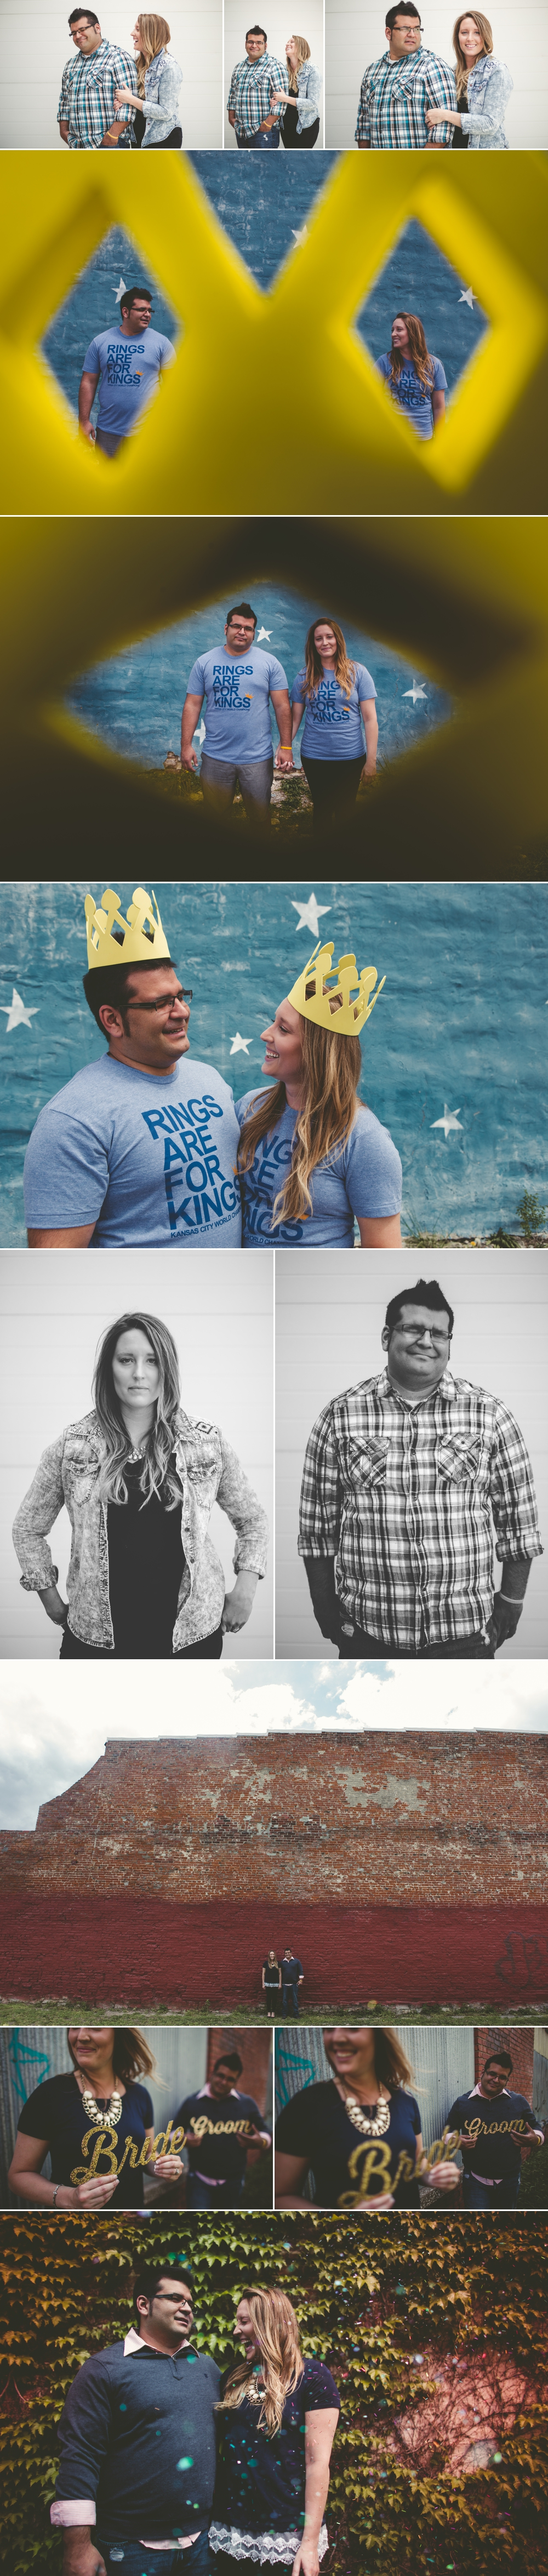 downtown_kansas_city_engagement_session_jason_domingues_photography_best_kc_wedding_photographer_west_bottoms_royals_dogs_crossroads, midtown_documentary_portrait_2